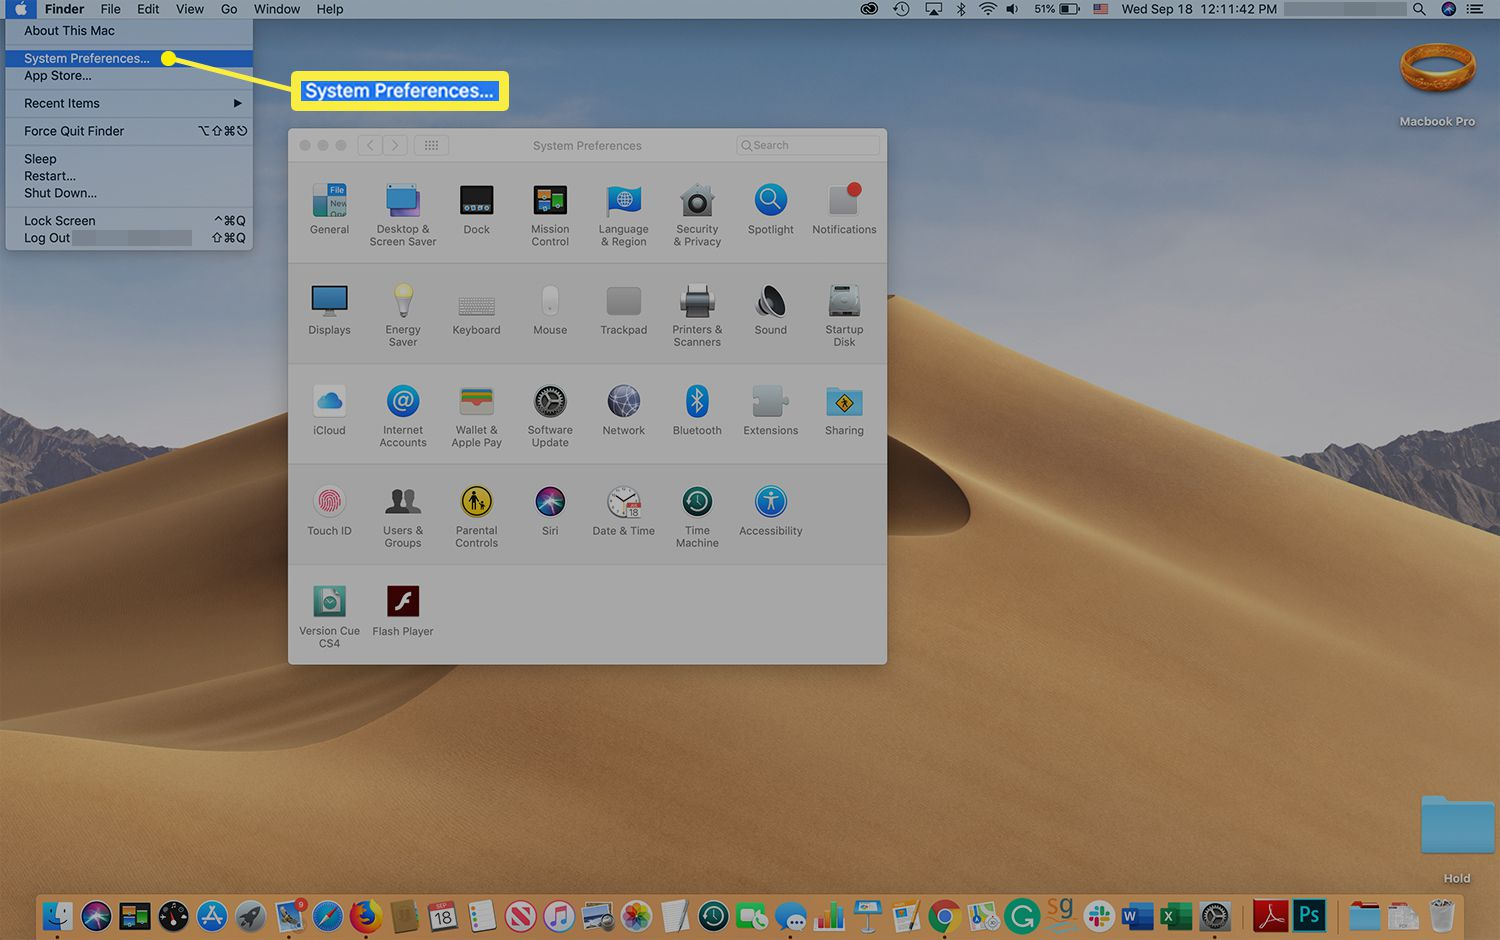 Mac screen showing Apple menu and location of System Preferences option